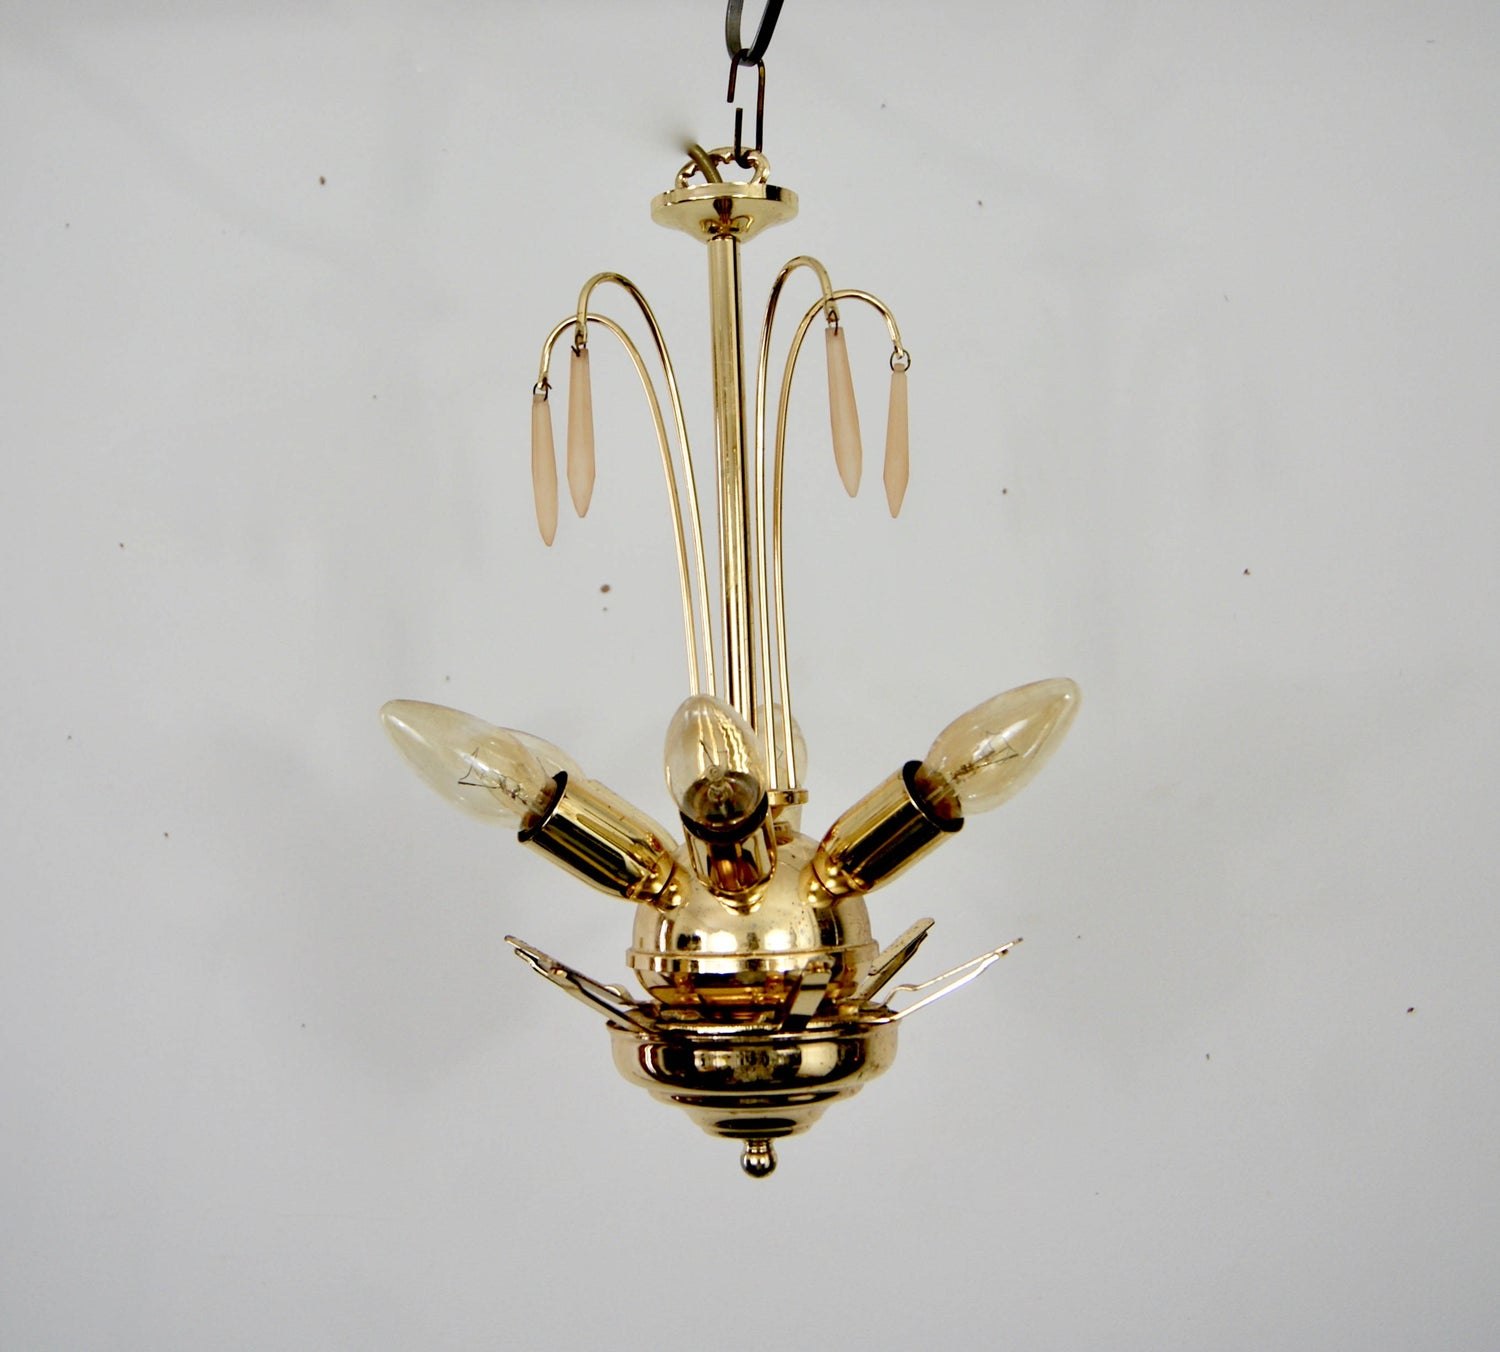 Art Deco Revival Vintage 1960 Venetian Murano Textured Glass Chandelier Ceiling Hanging Lamp